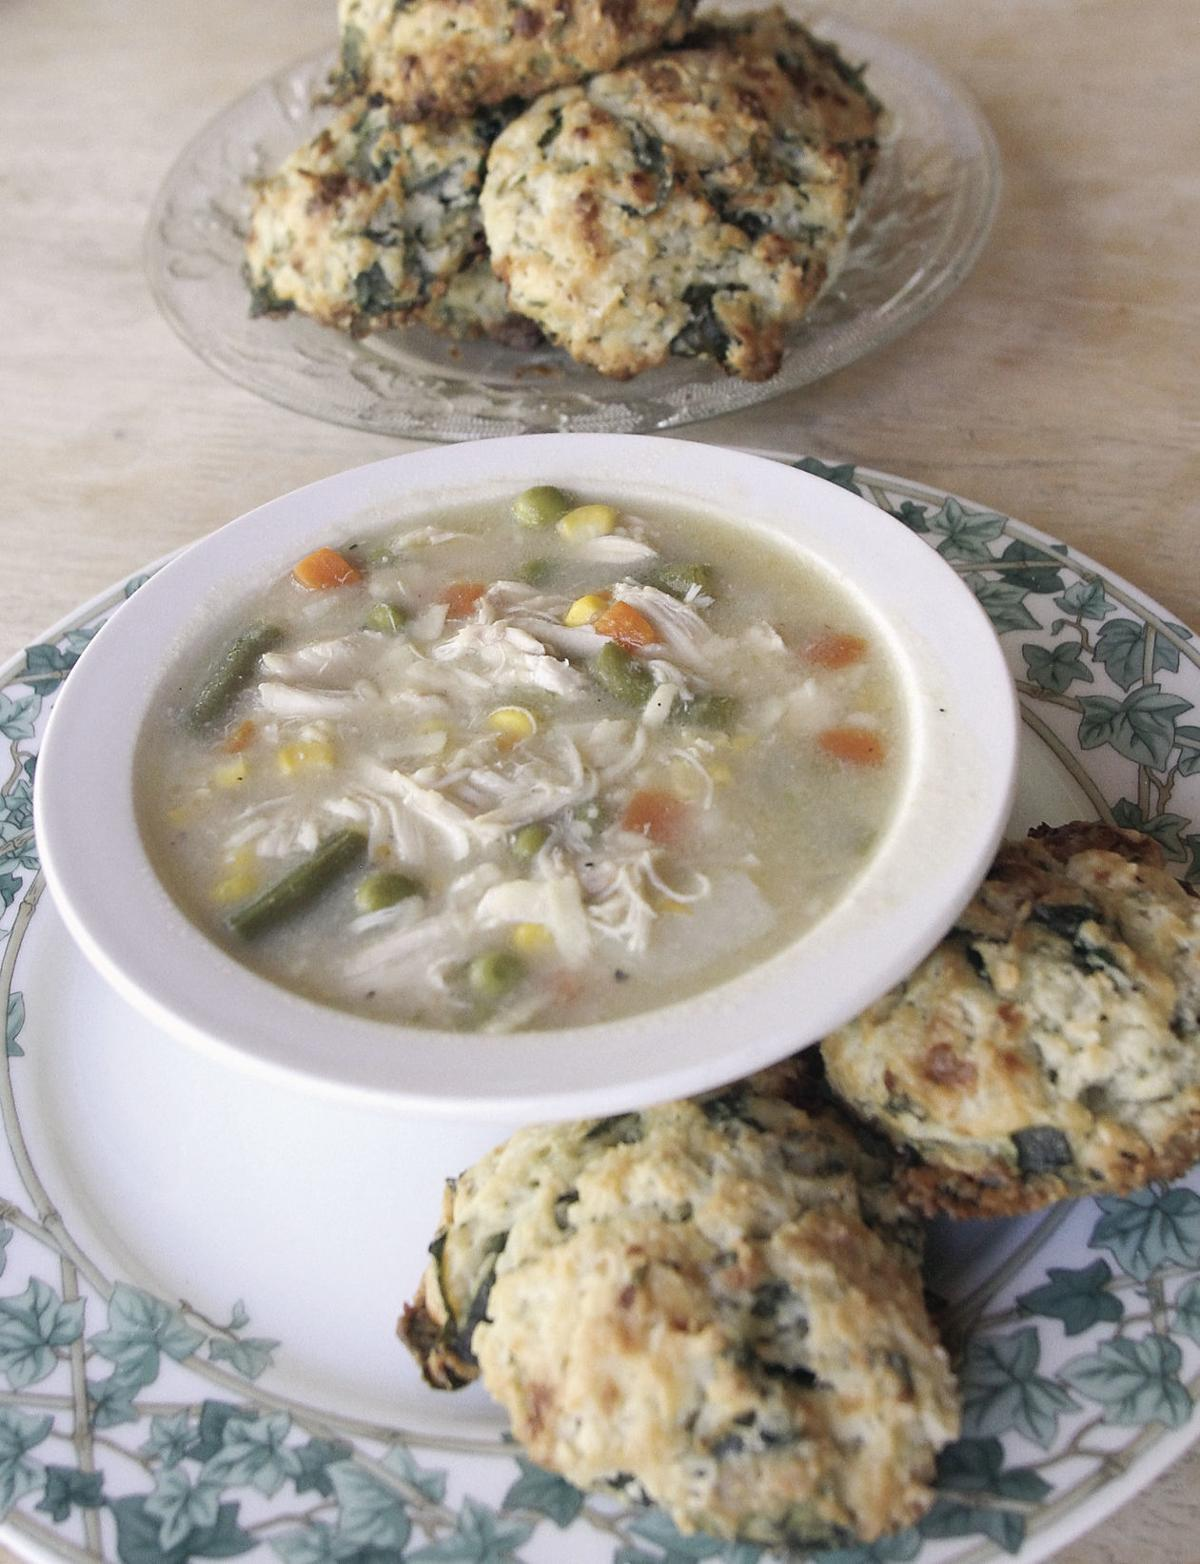 Savory scones and chicken vegetable soup